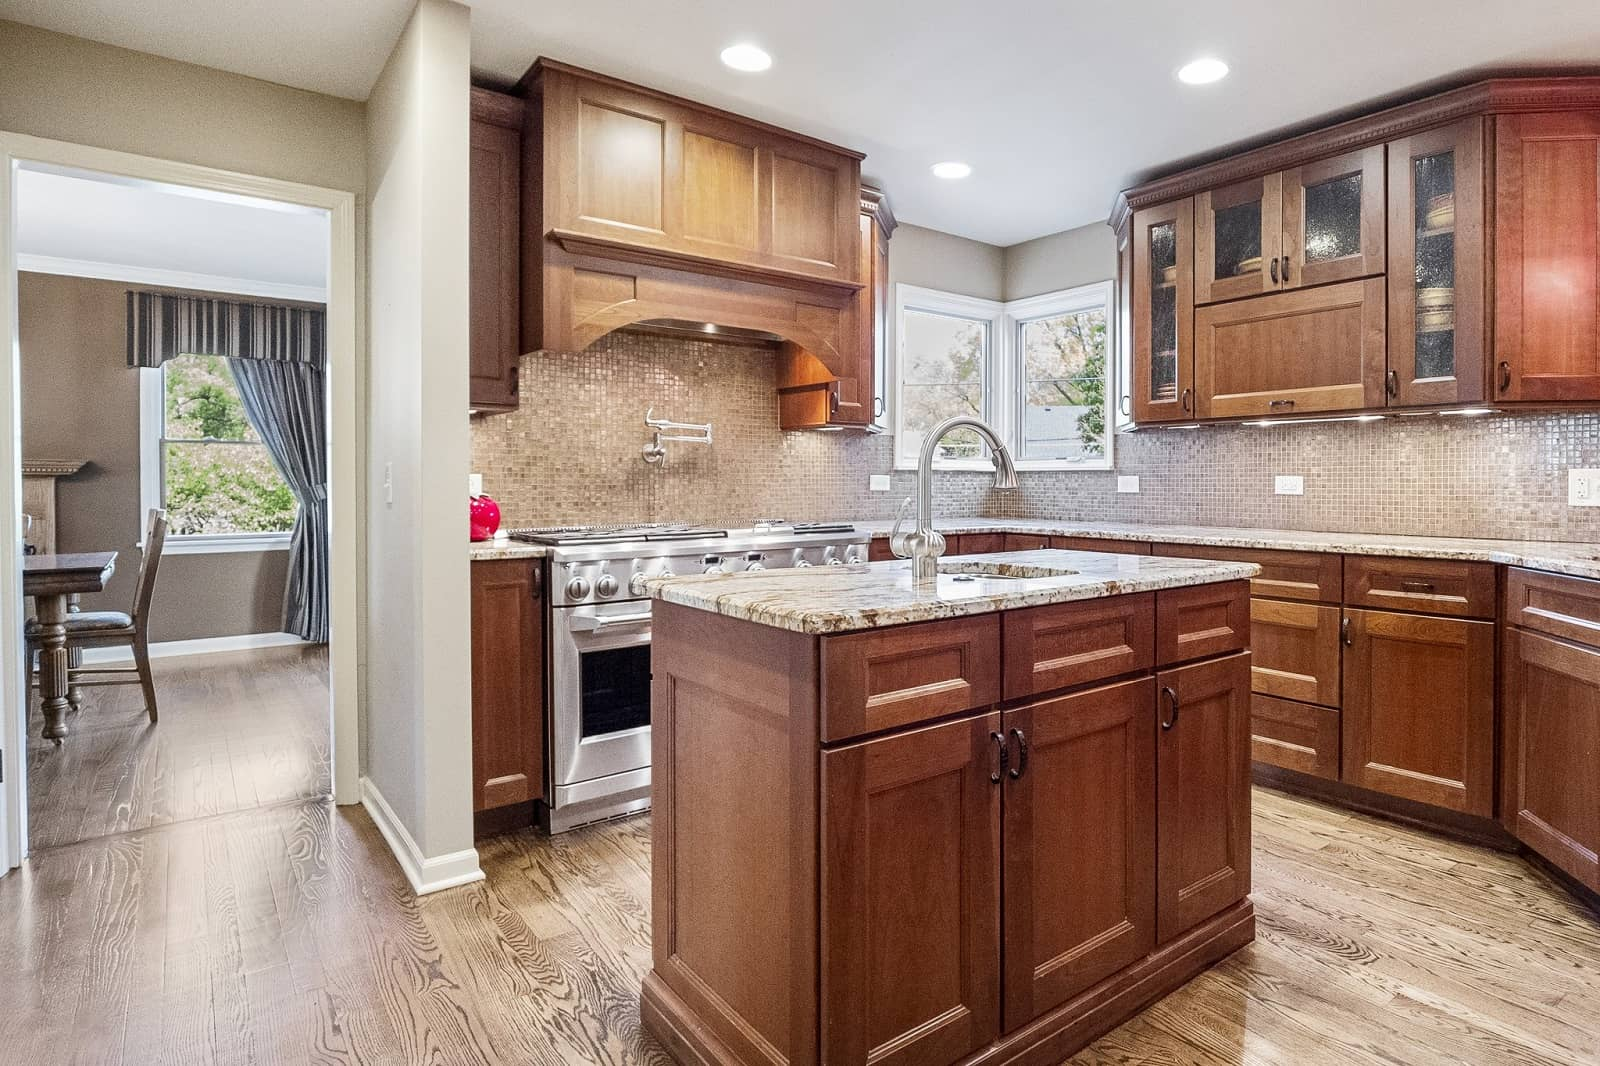 Real Estate Photography in Naperville - IL - USA - Kitchen View